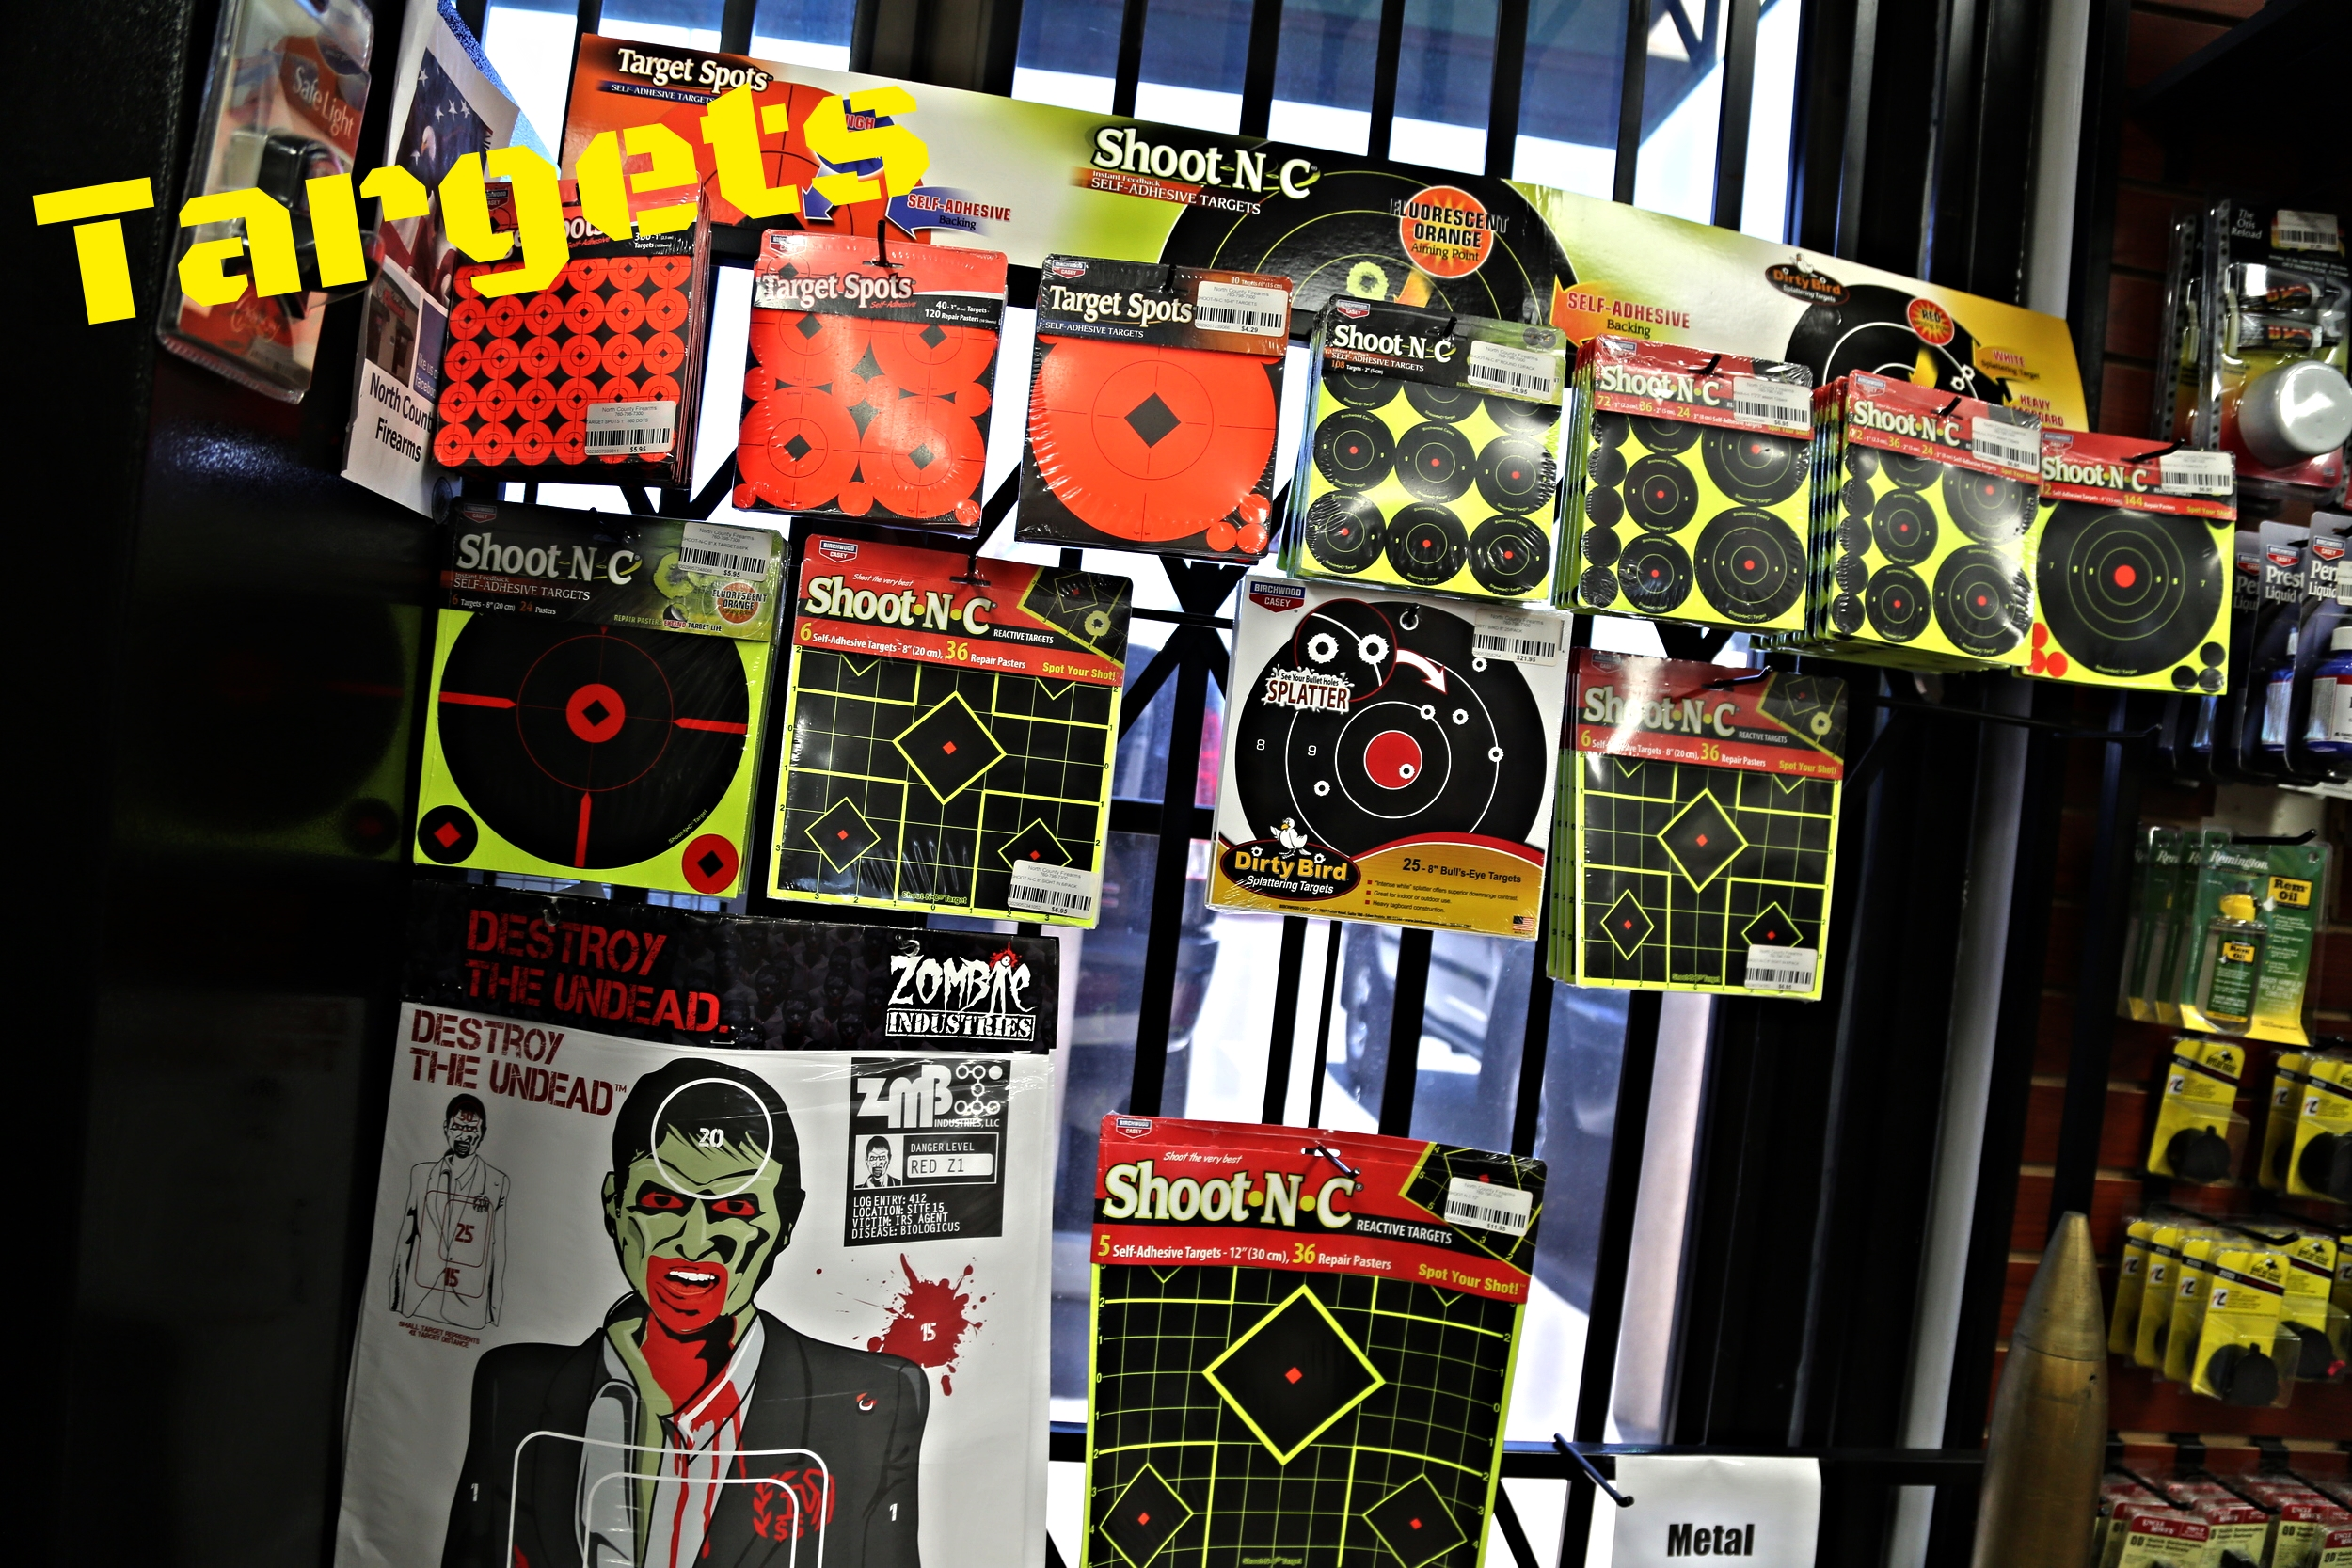 If you are in need of targets for your next shooting trip, be sure to stop by and grab some Shoot-N-C targets, Zombie targets, and many others that we have in stock!